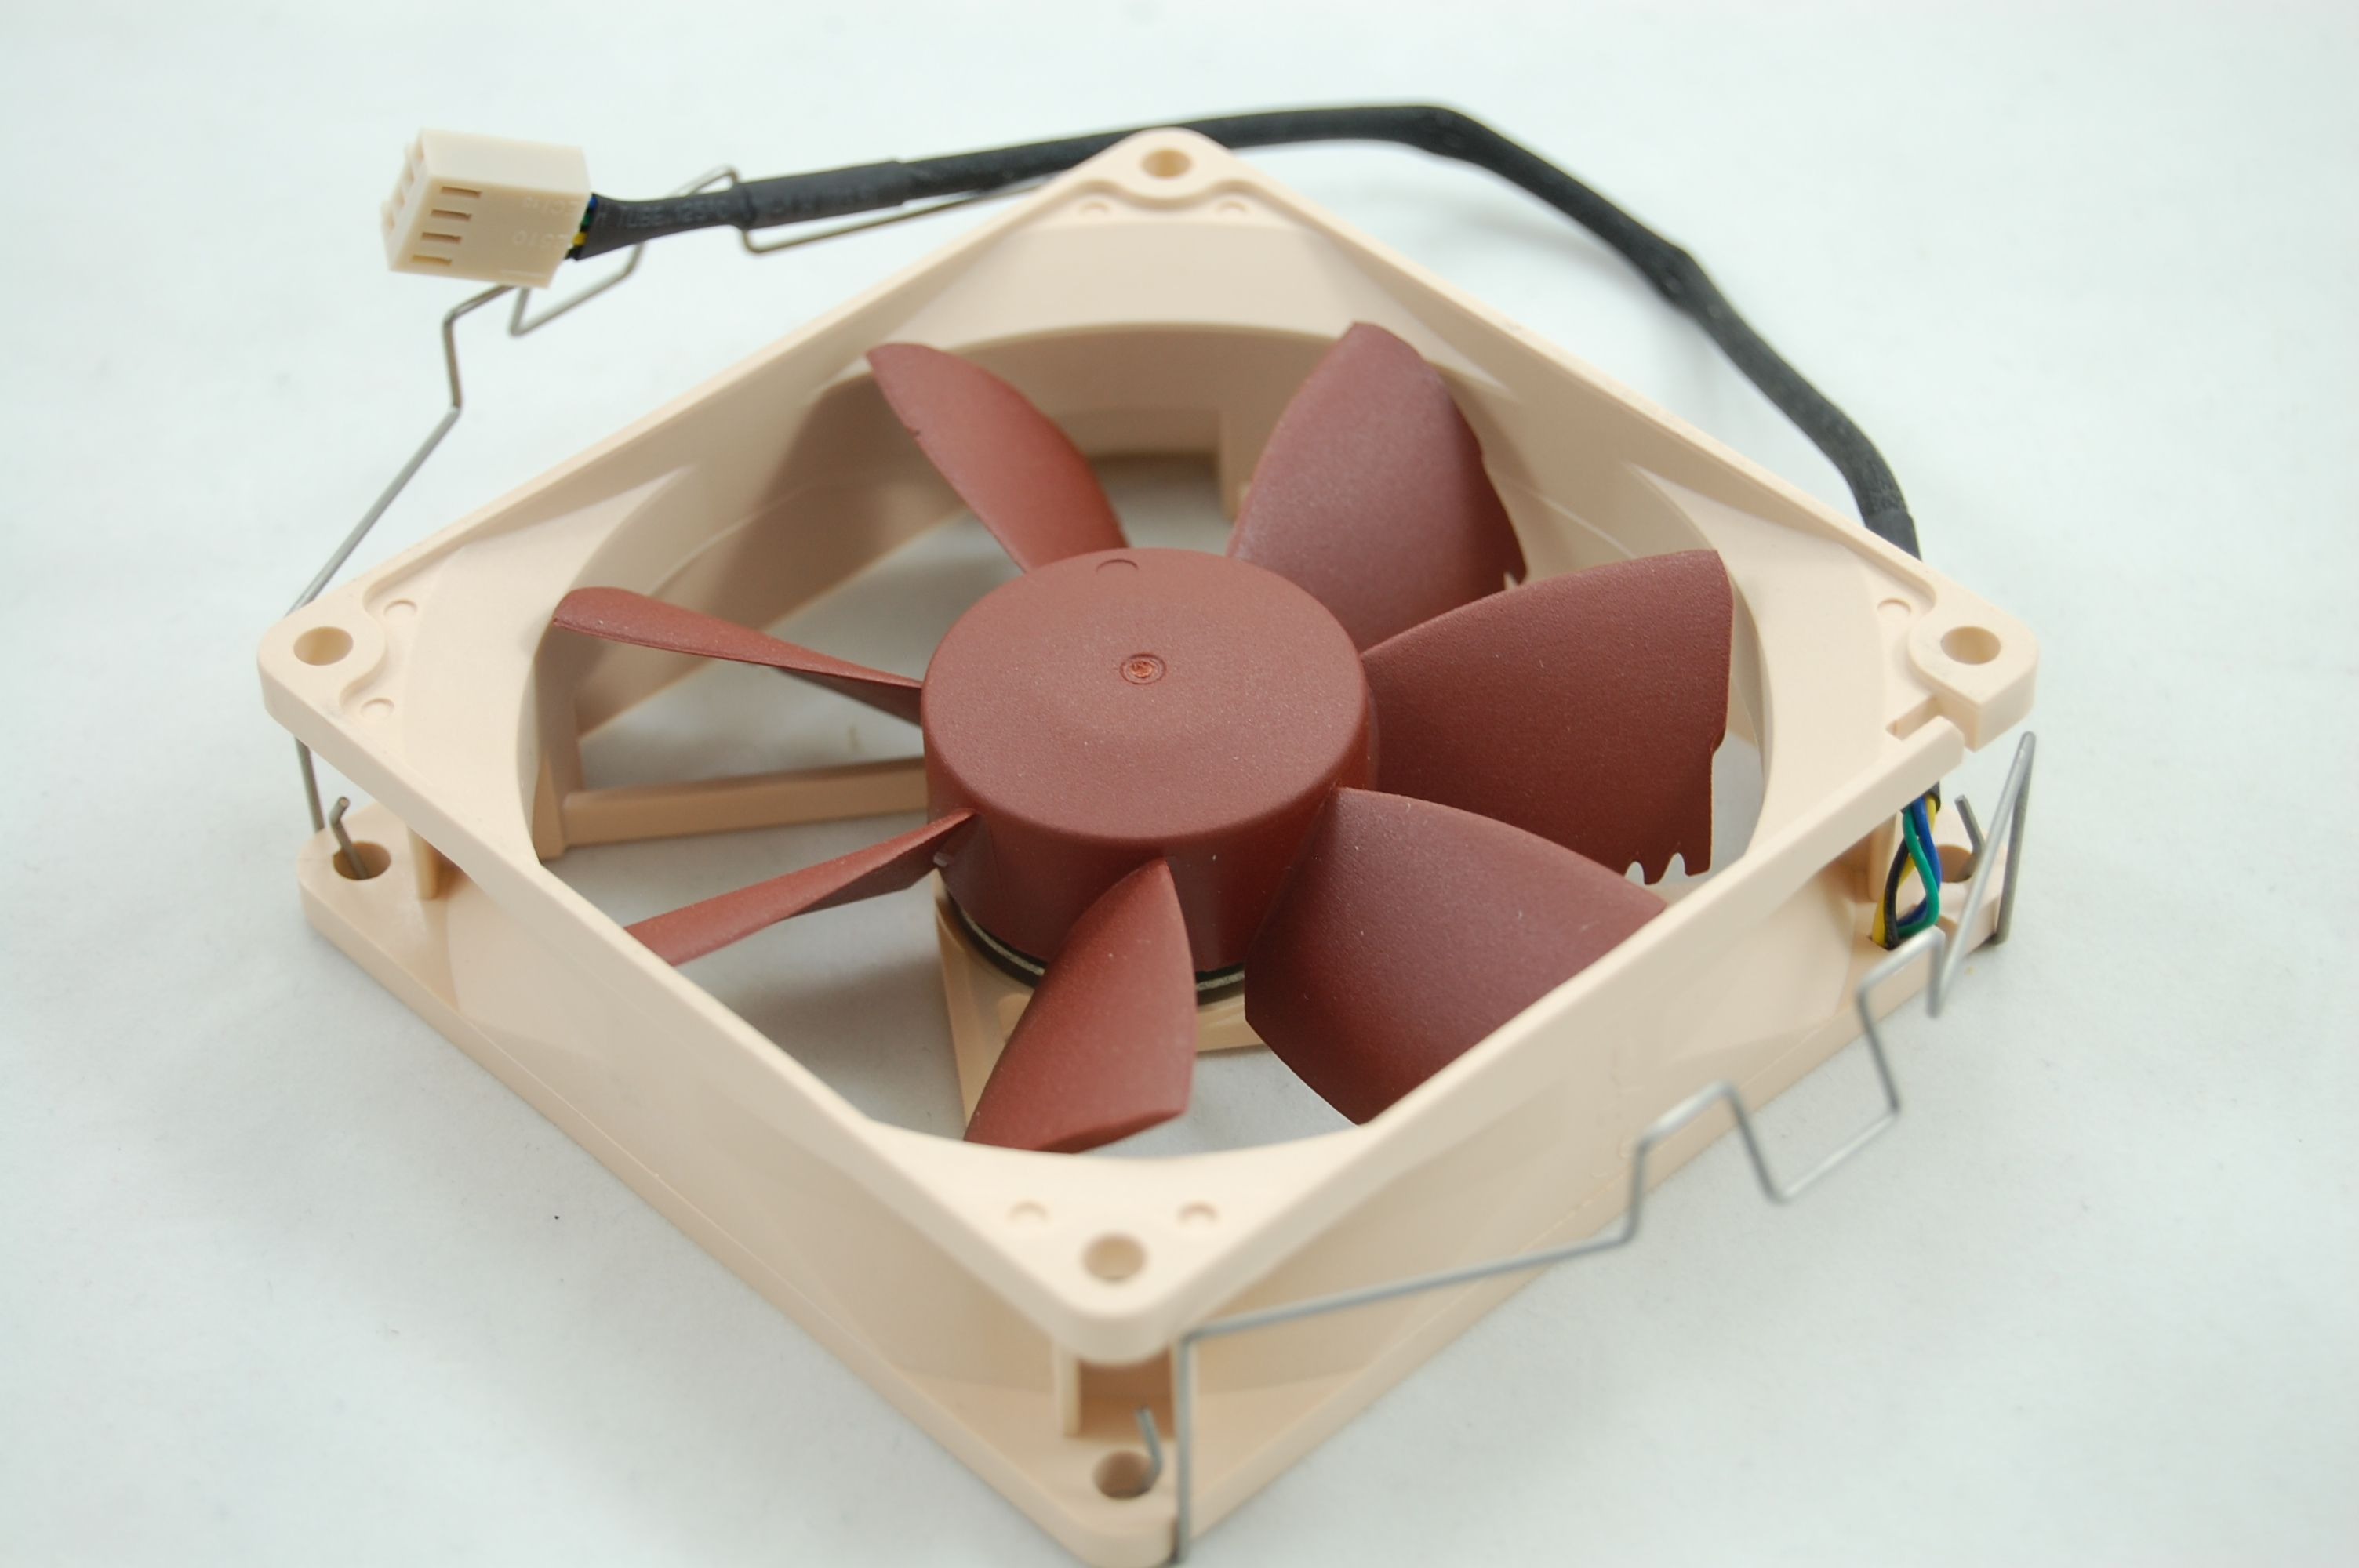 Noctua NH-L12 Small Fan